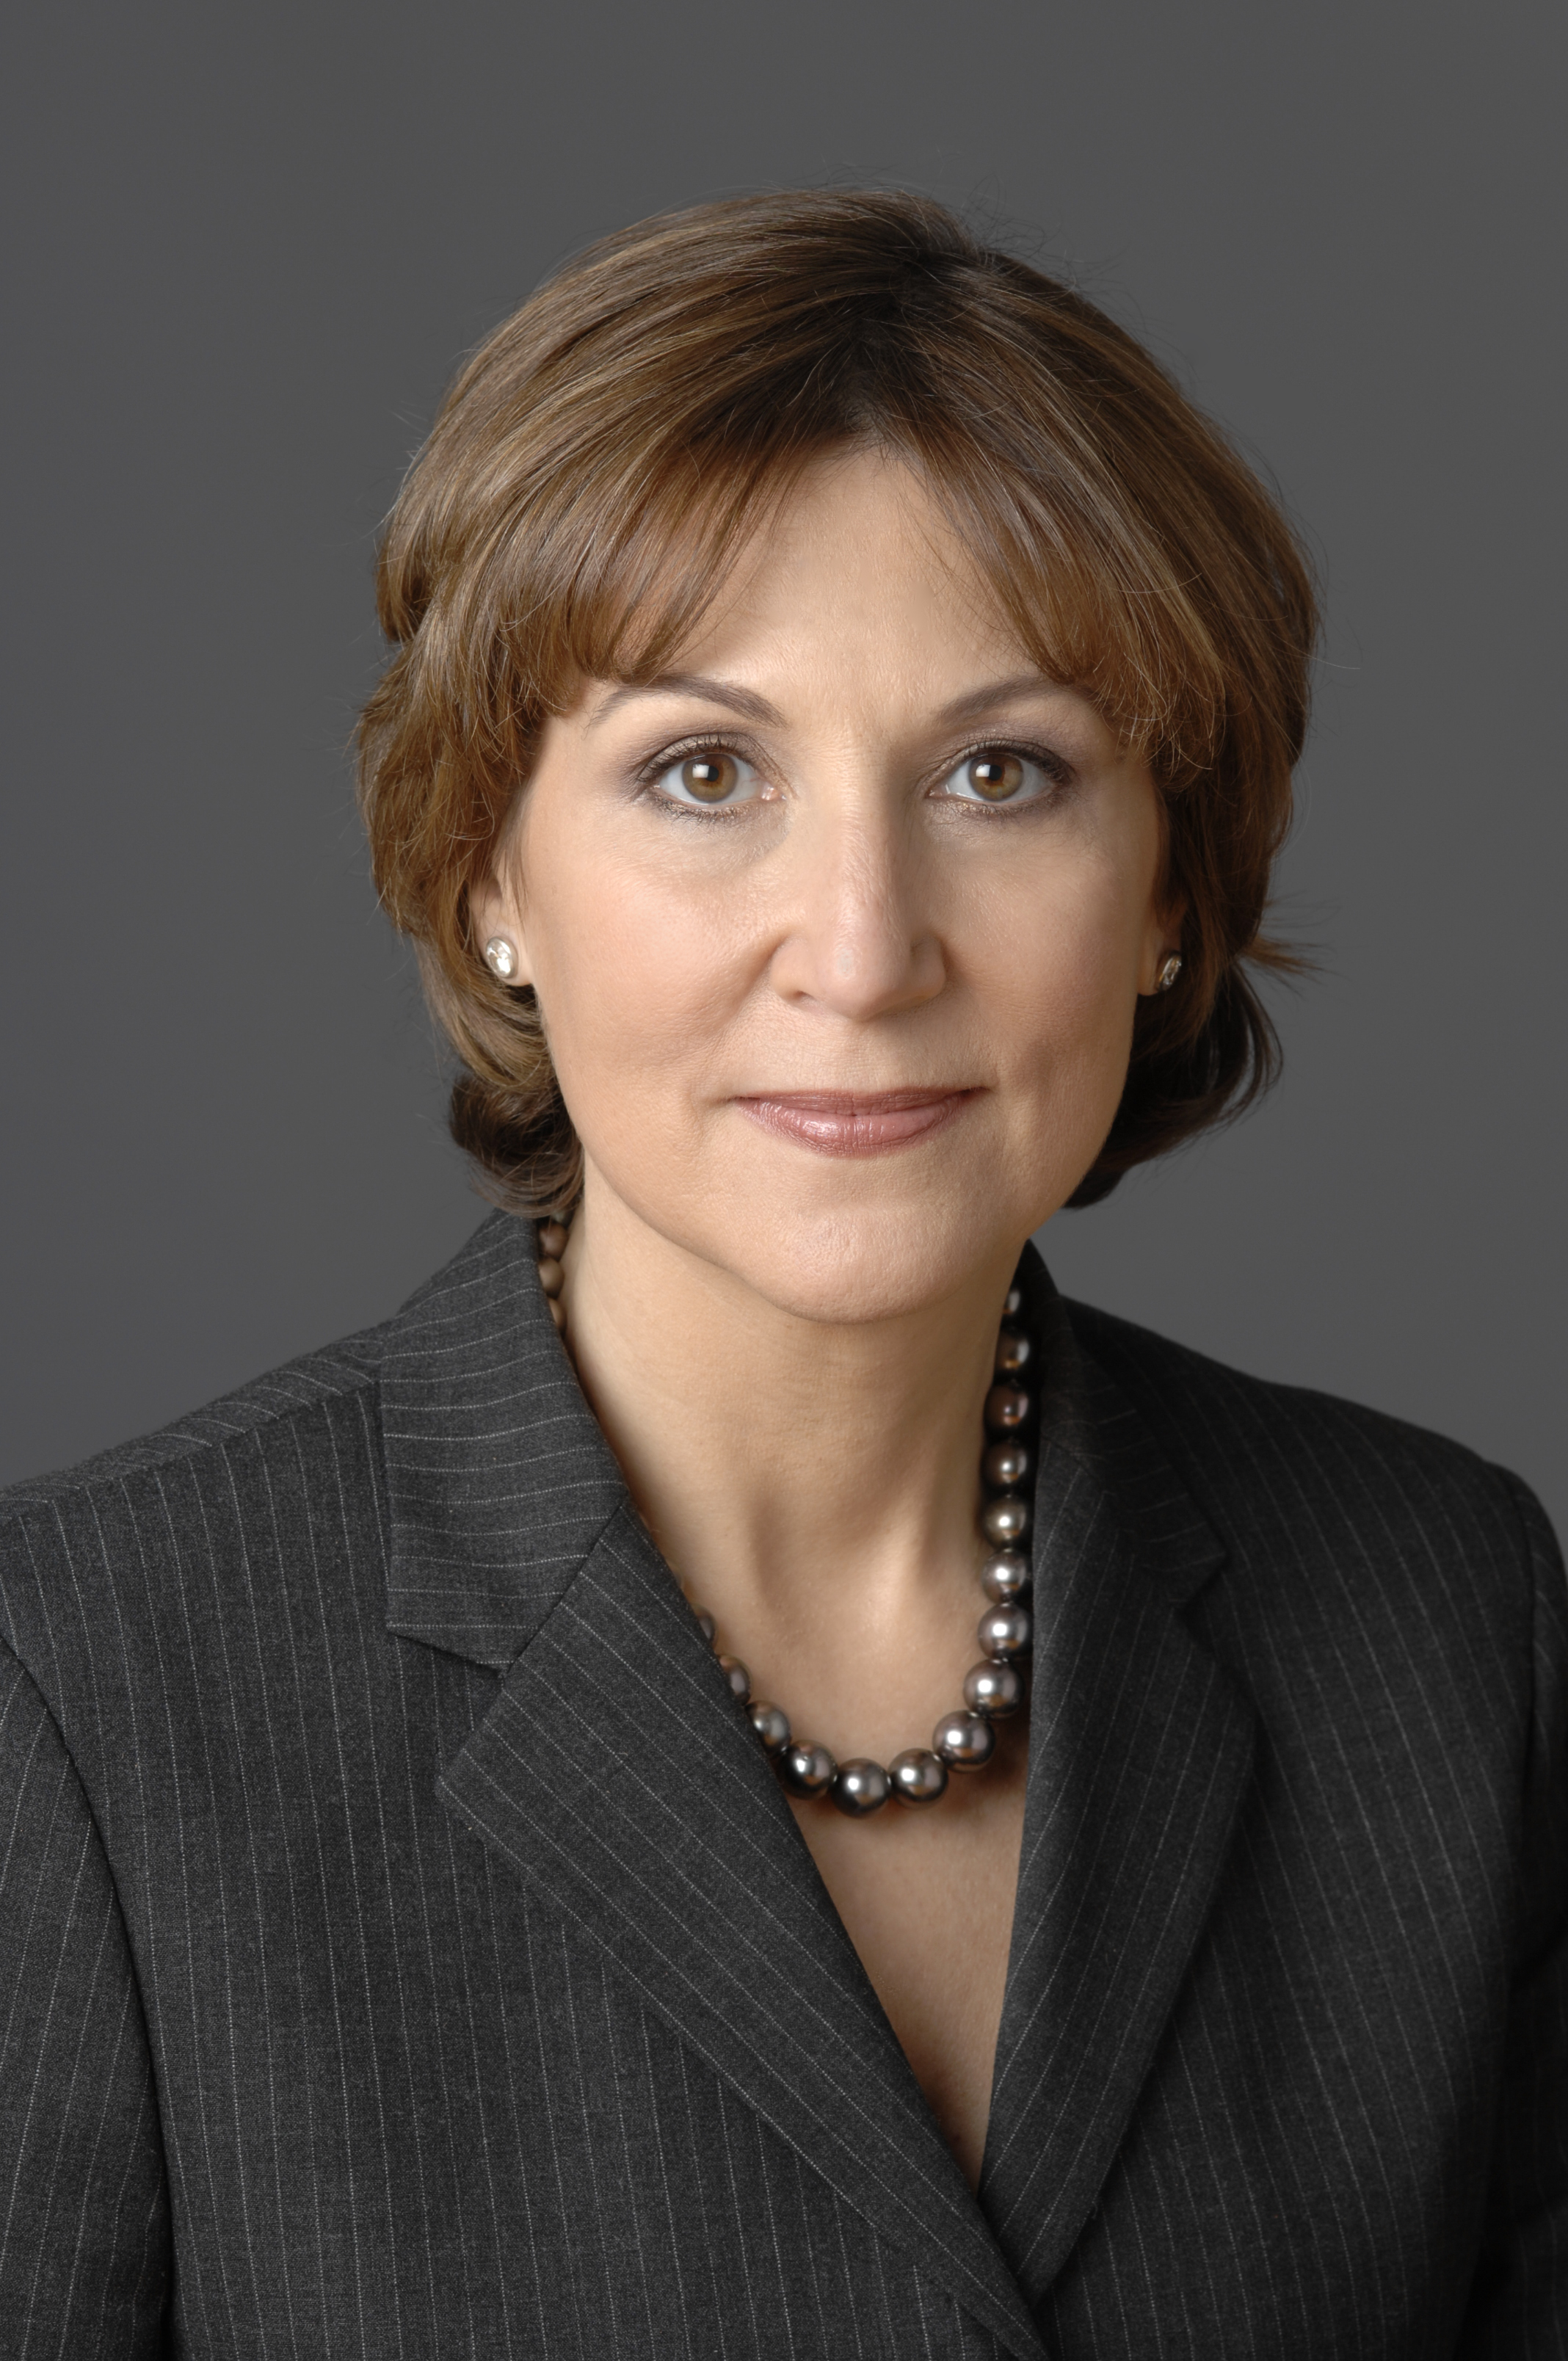 Roxanne Taylor, CMO of Accenture